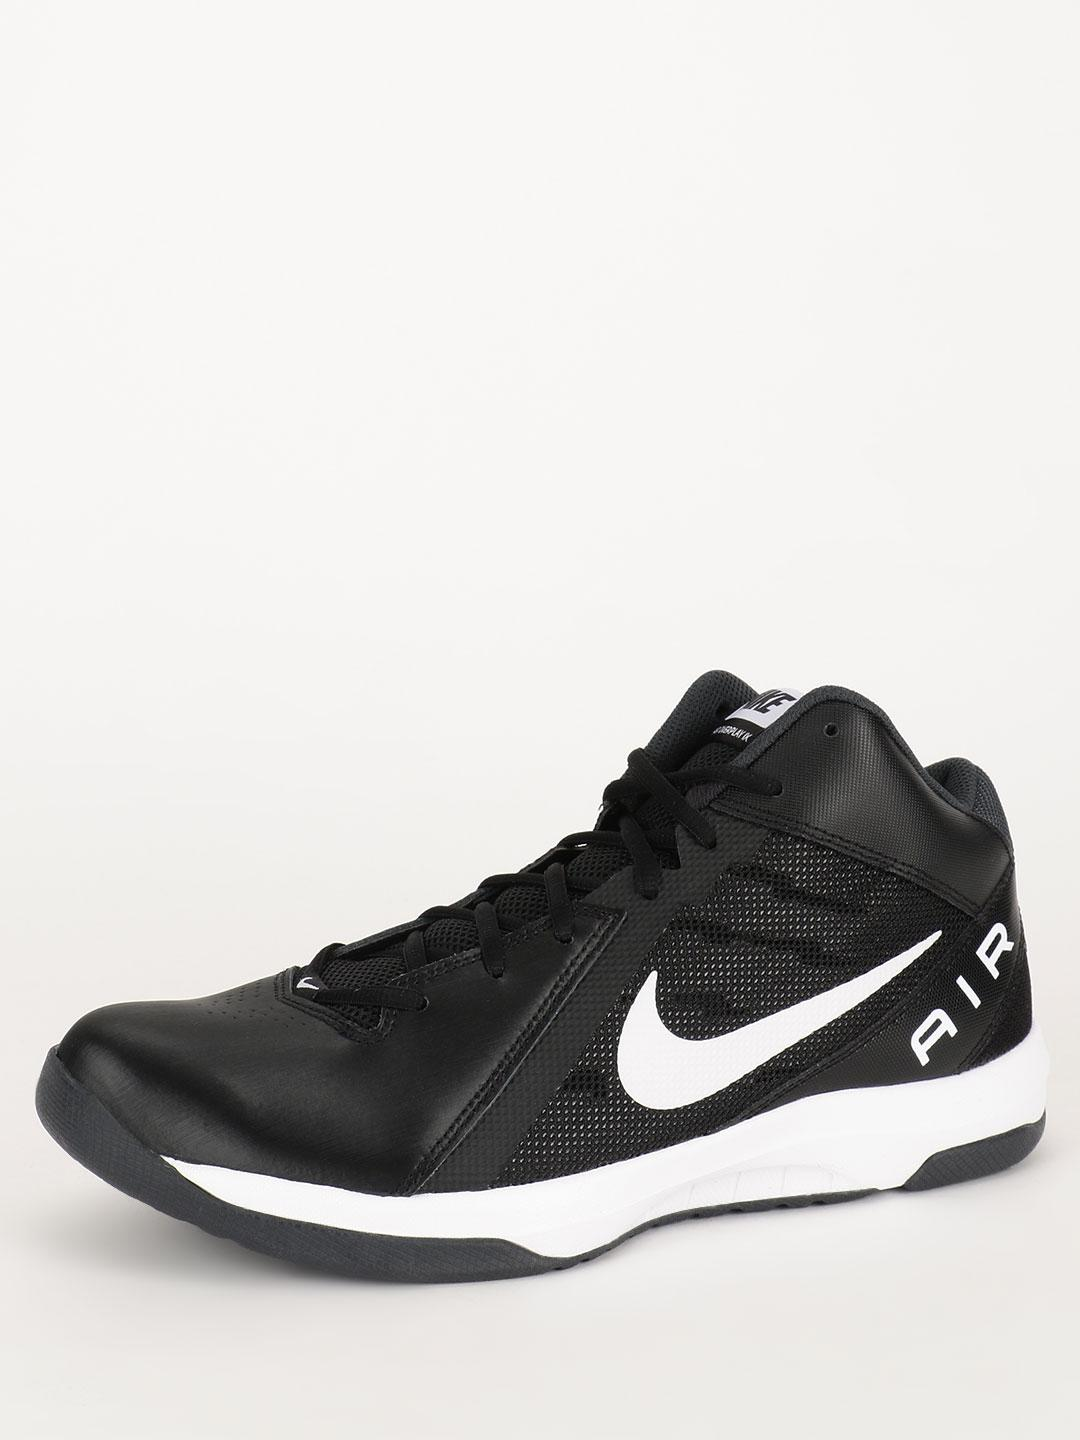 Nike Black/White/Anthracite/Dark Grey The Air Overplay IX Trainers 1